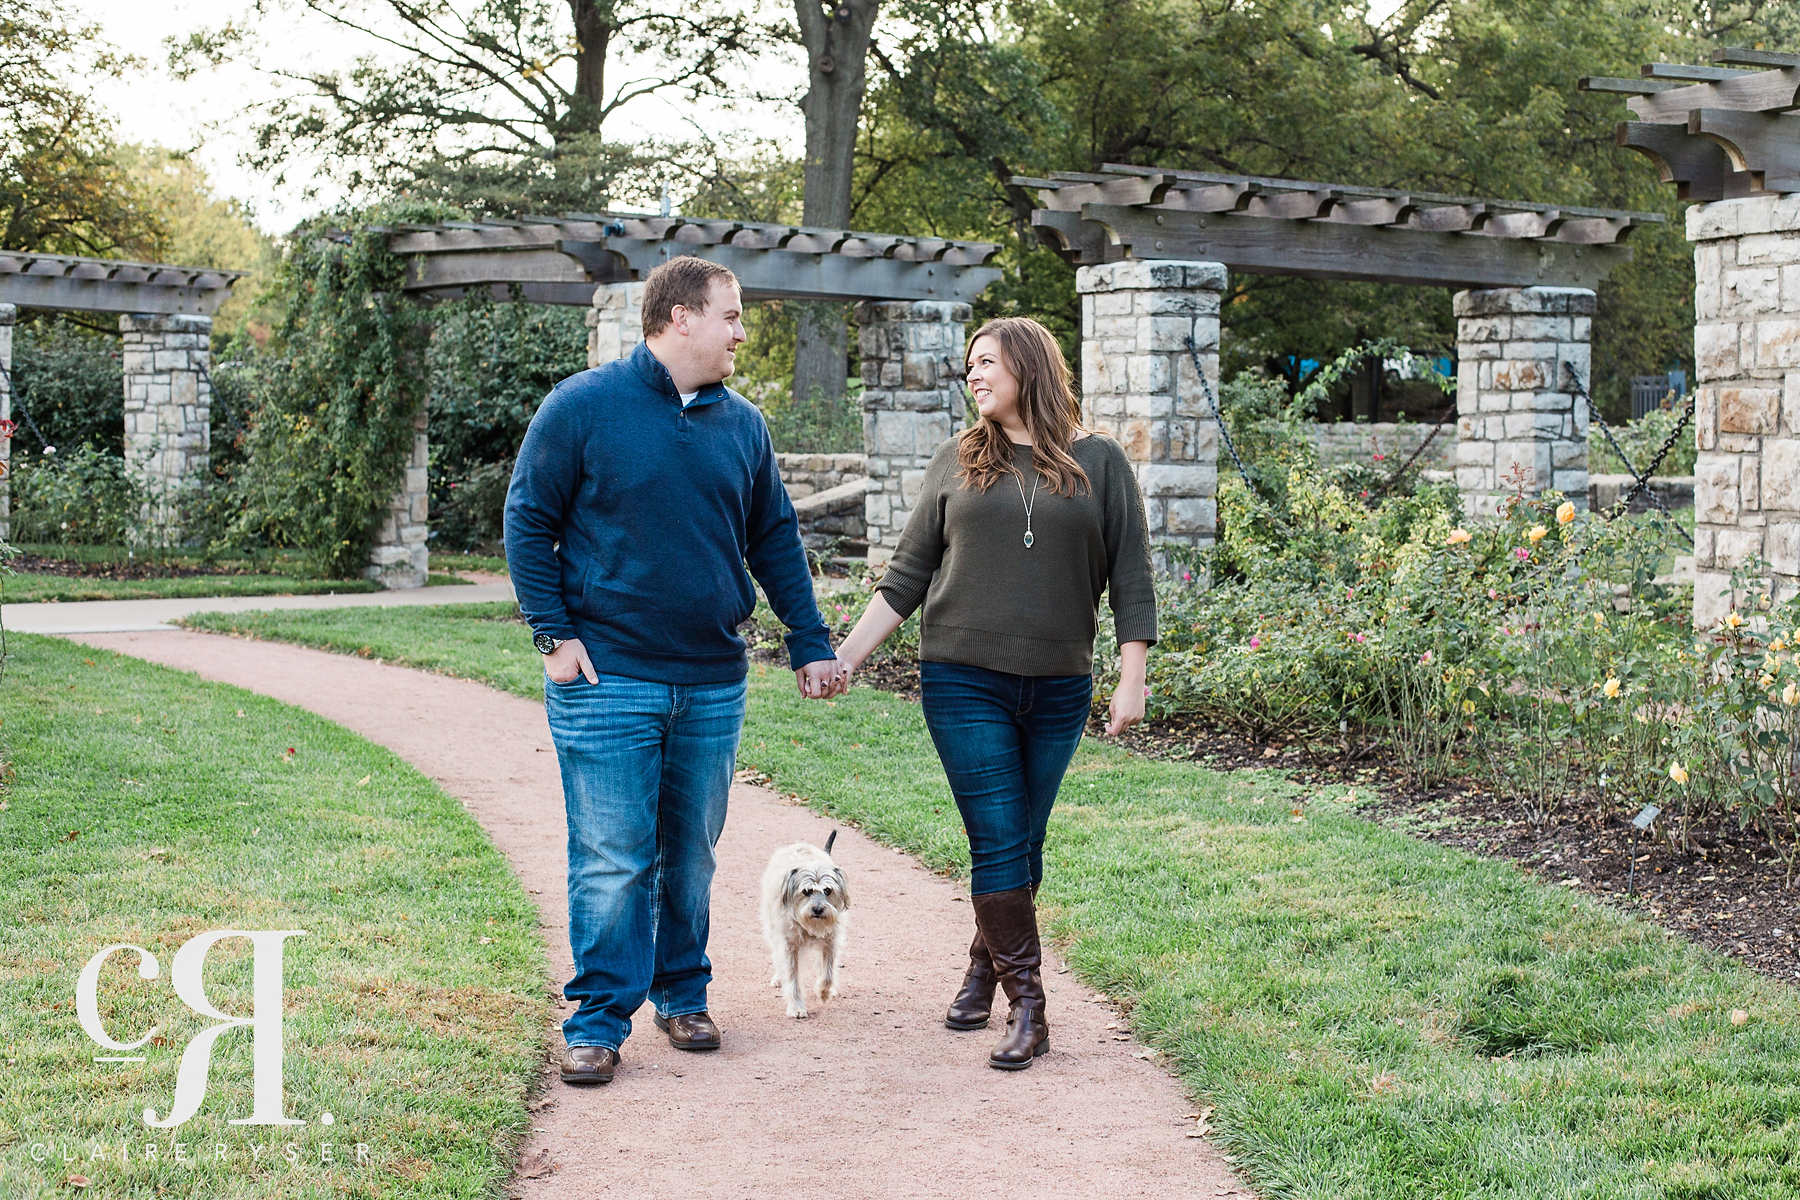 Walking Engagement Photos with Dog